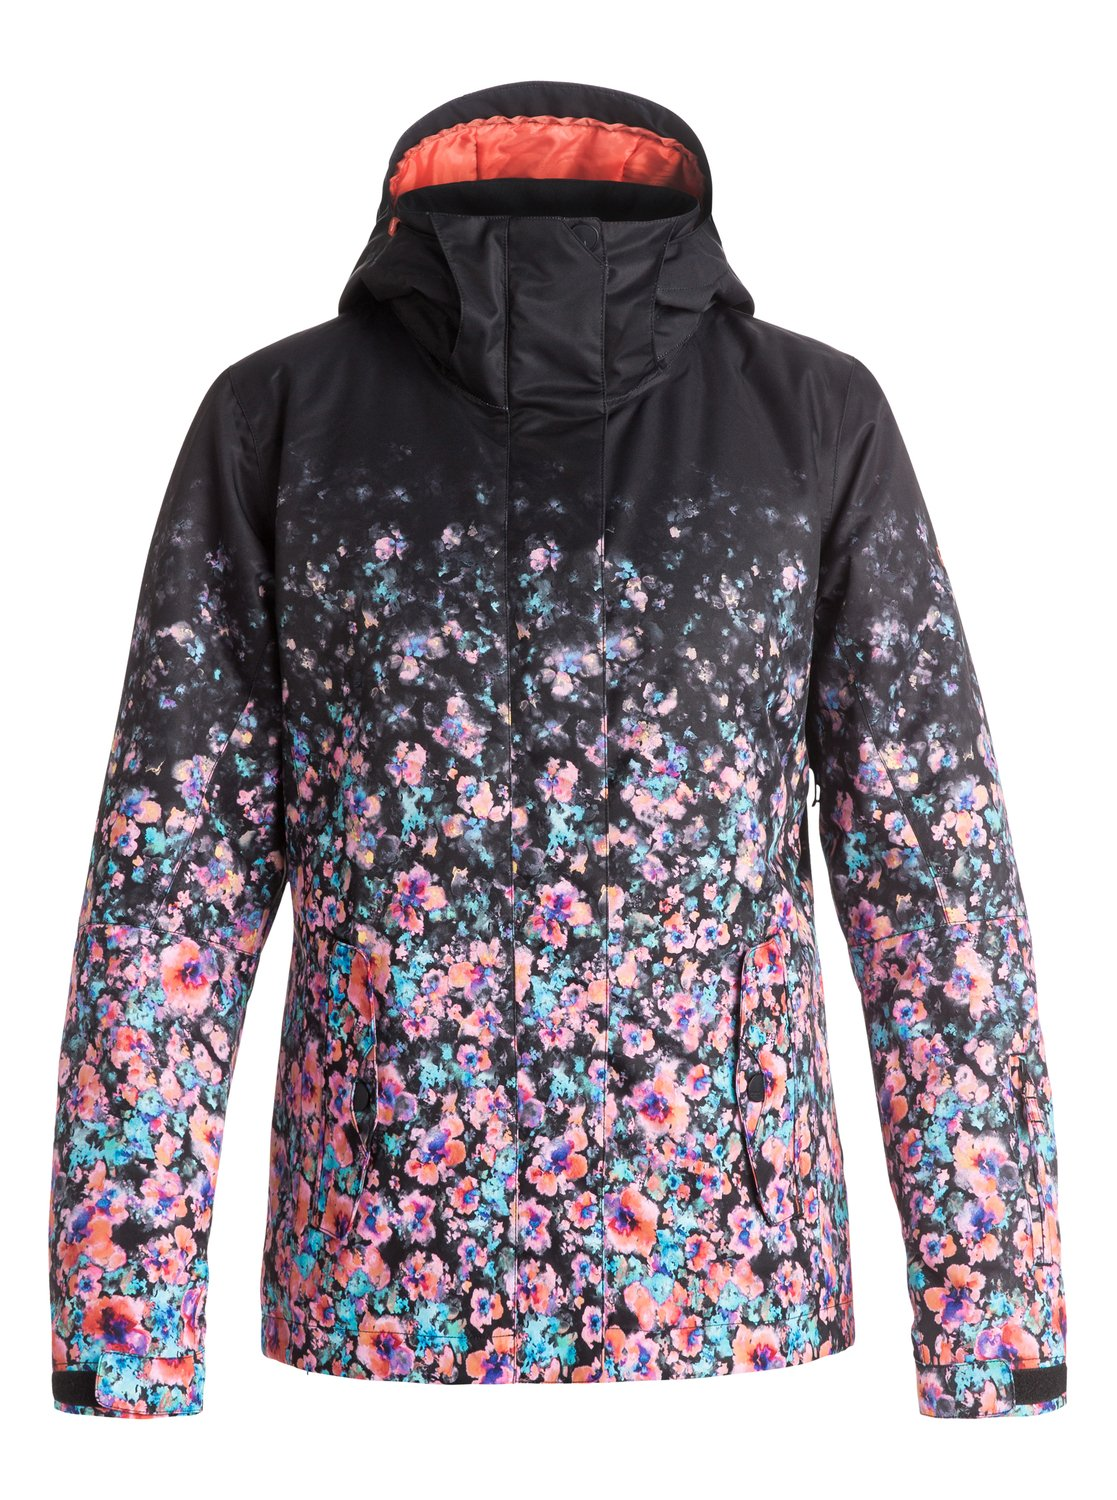 Сноубордическая куртка ROXY Jetty GradientThe Jet Ski Gradient snow jacket for women comes complete with an easy to wear regular fit. The fashionable gradient floral print has been woven with 10K ROXY DryFlight® technology waterproofing for reliable waterproof and breathable protection in a wide range of winter conditions while Warmflight® level 2 insulation provides low-bulk warmth and critically-taped seams offer extra protection in the most exposed areas.<br>